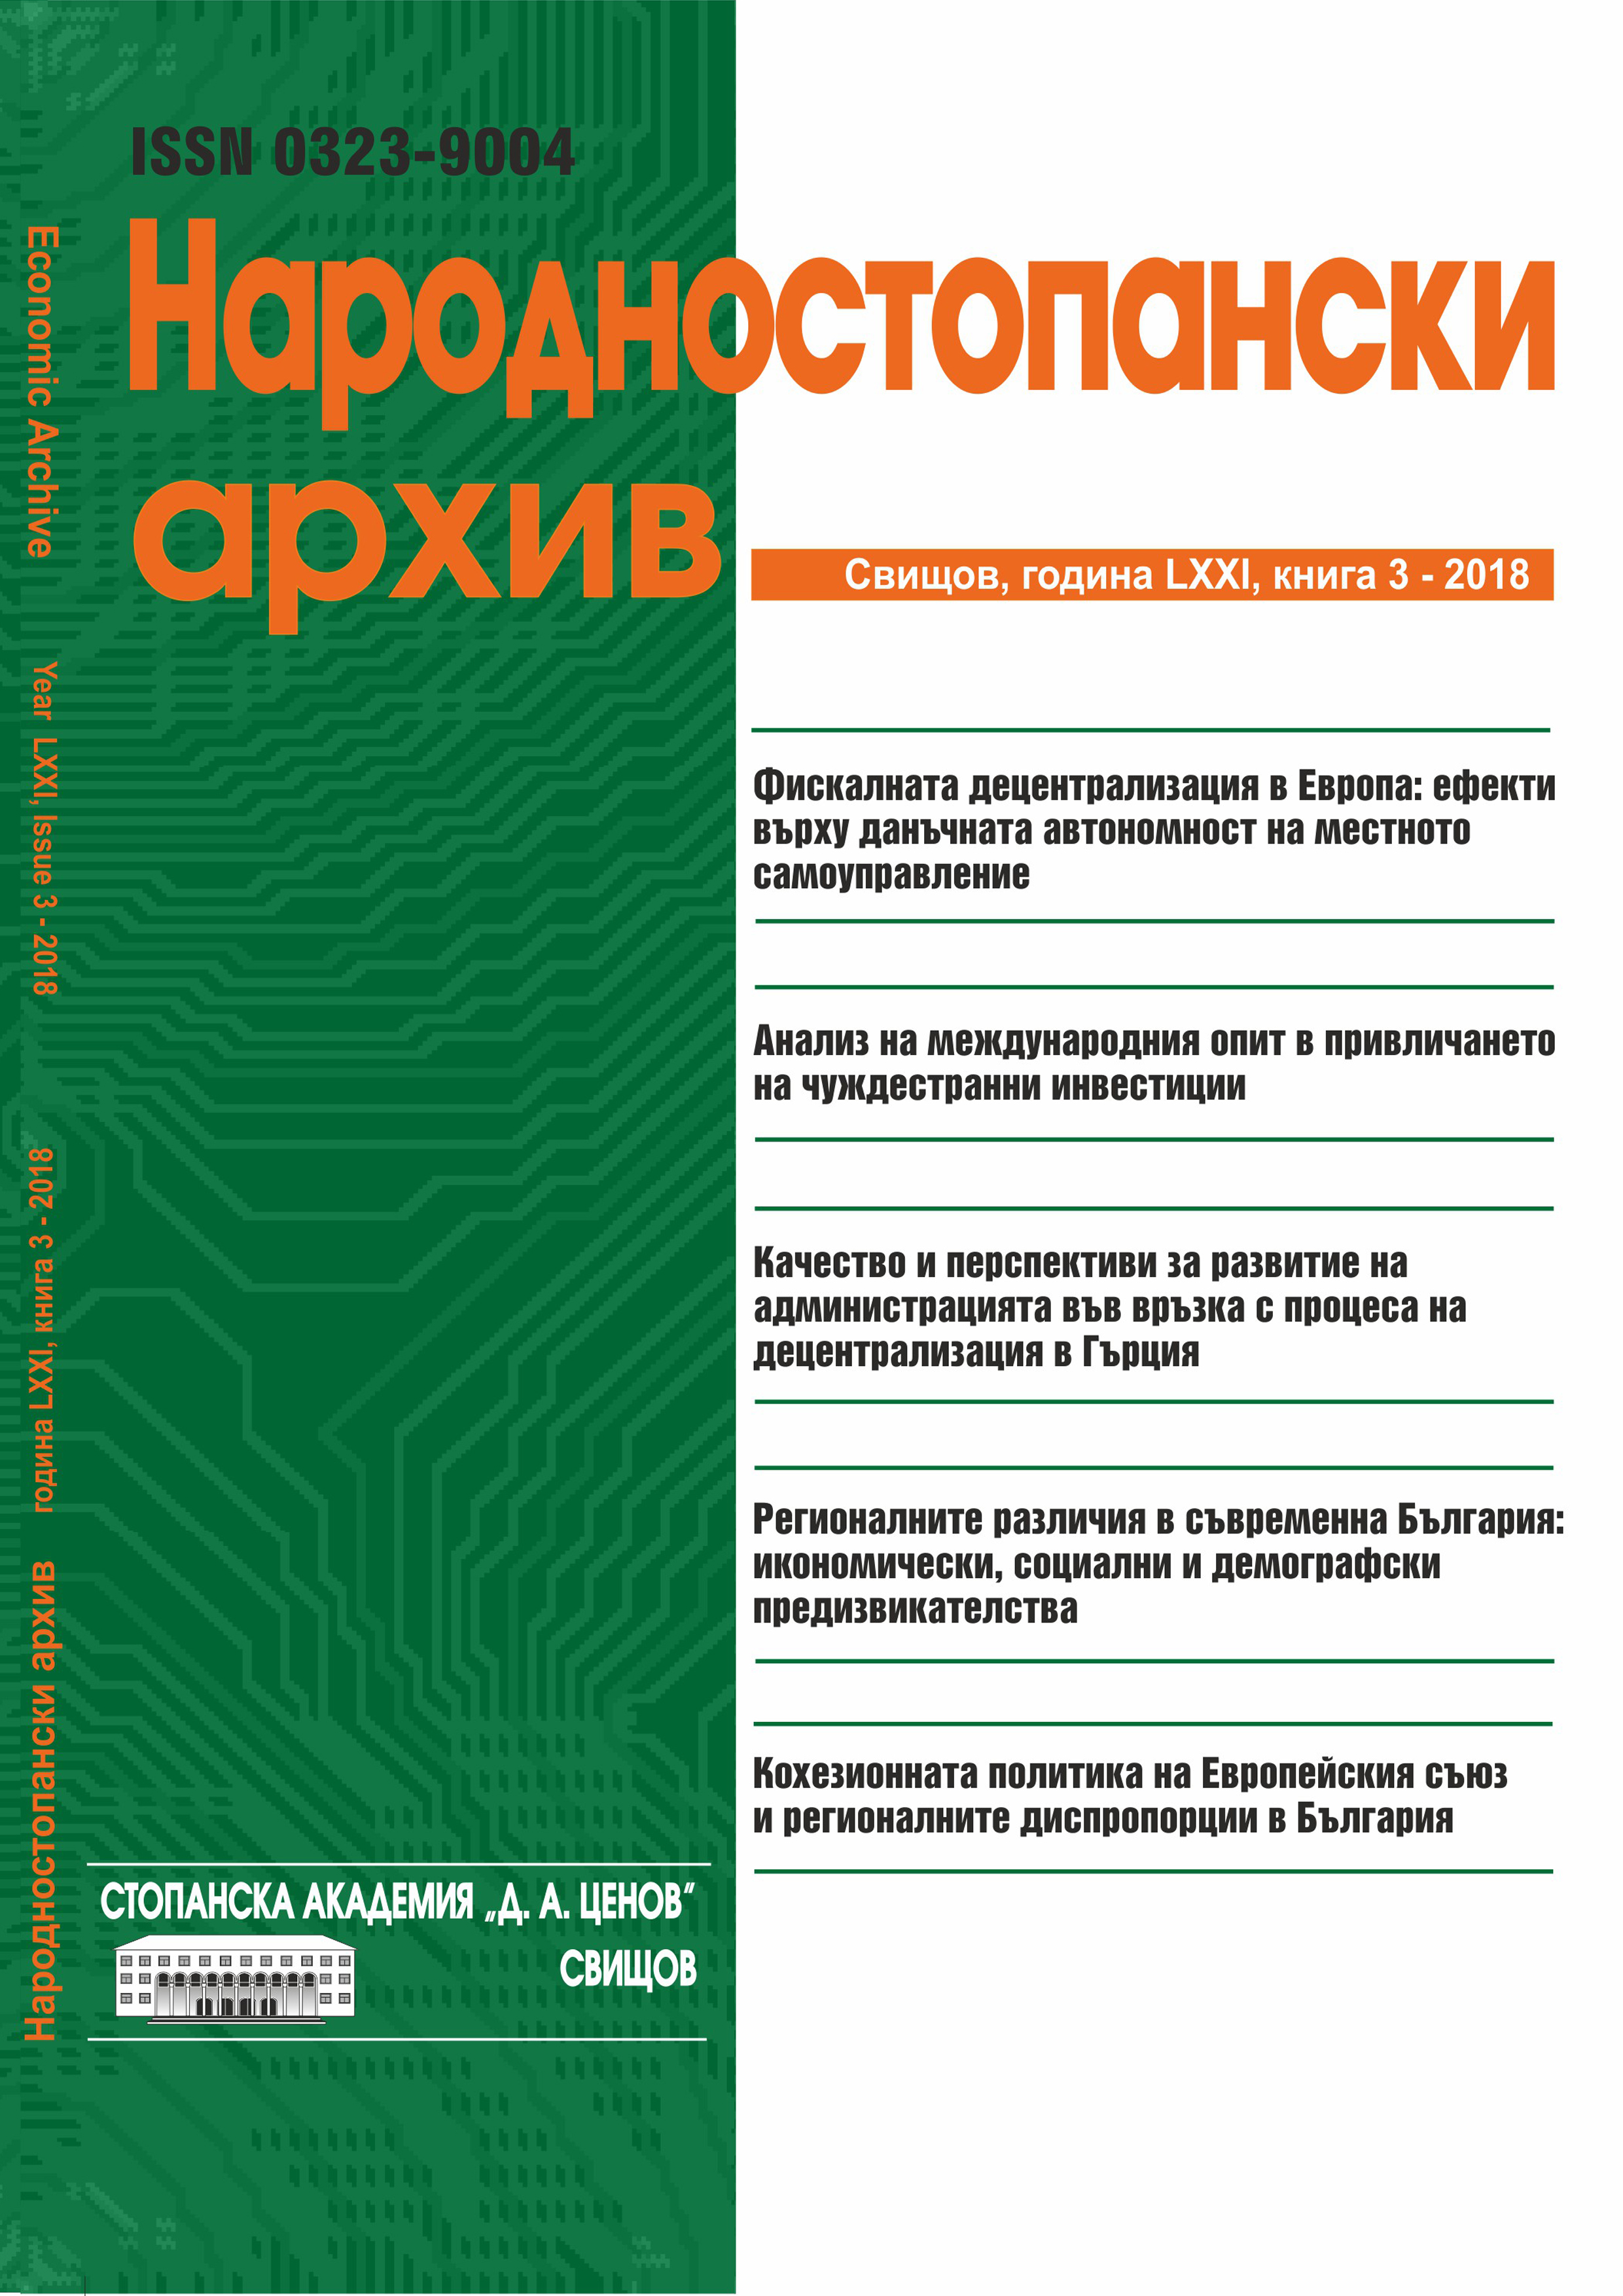 REGIONAL DISPARITIES IN BULGARIA TODAY: ECONOMIC, SOCIAL, AND DEMOGRAPHIC CHALLENGESREGIONAL DISPARITIES IN BULGARIA TODAY: ECONOMIC, SOCIAL, AND DEMOGRAPHIC CHALLENGES Cover Image